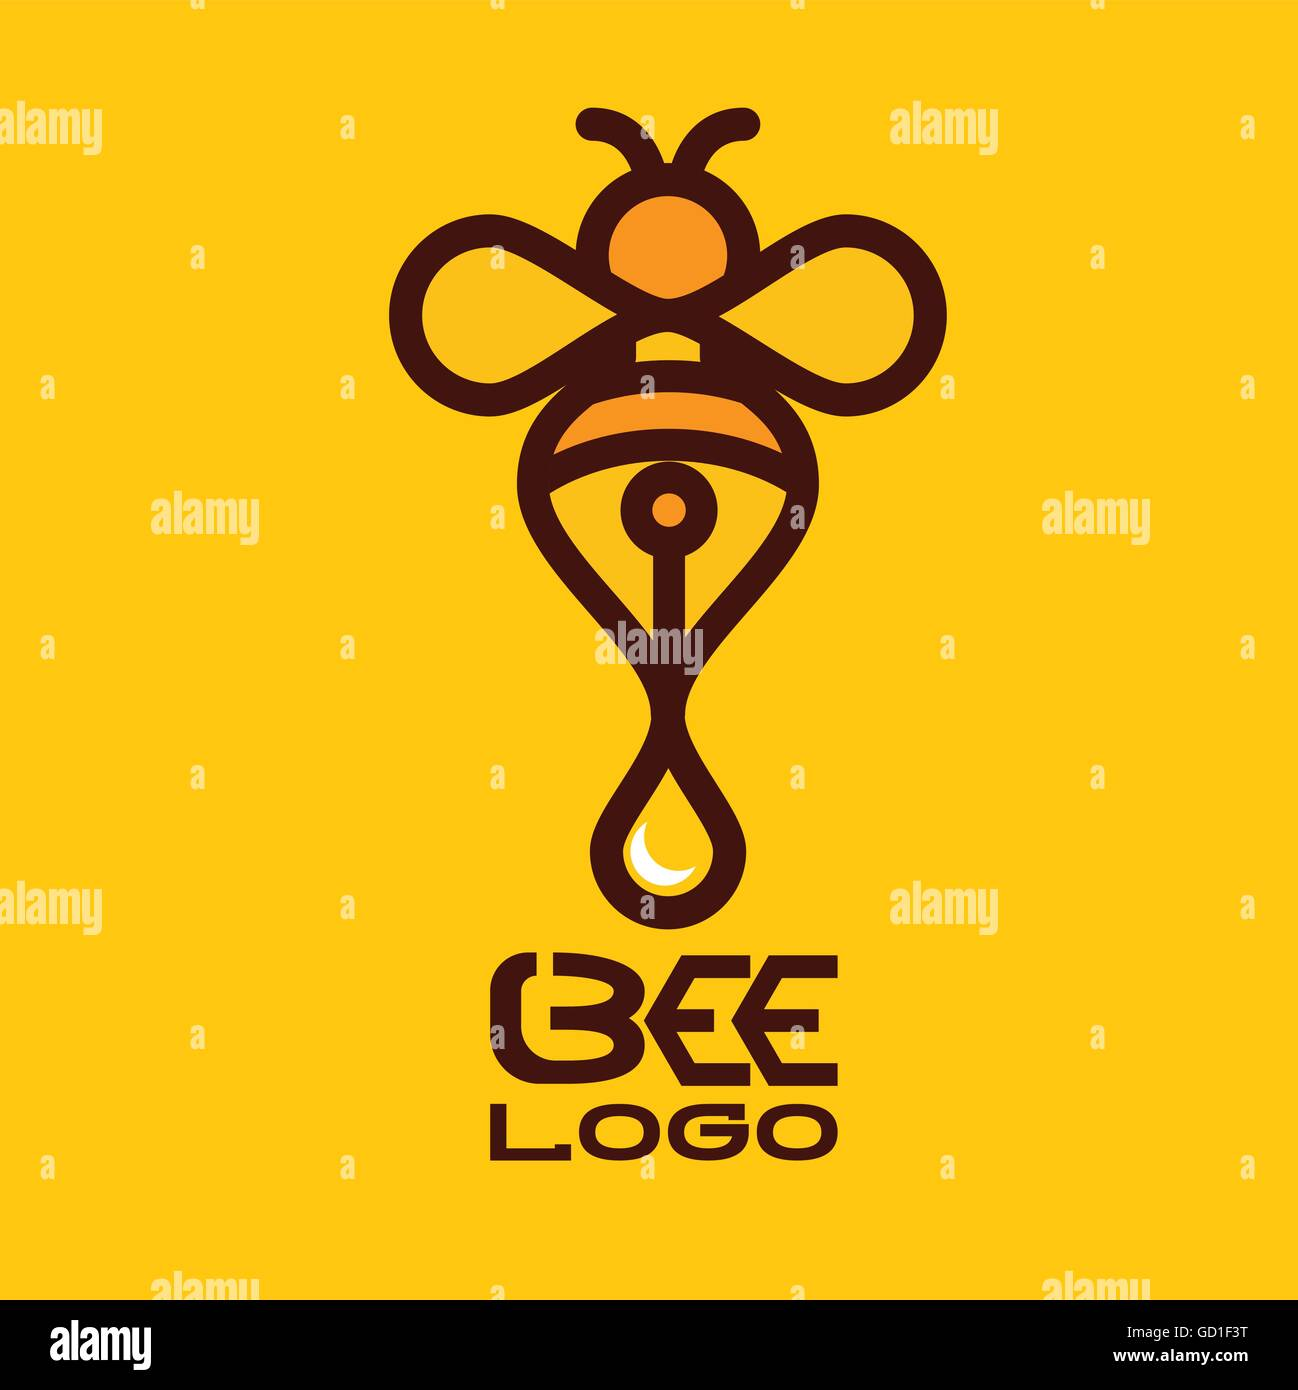 bee logo designed in a simple way so it can be use for multiple proposes like logo ,mark ,symbol or icon. - Stock Image